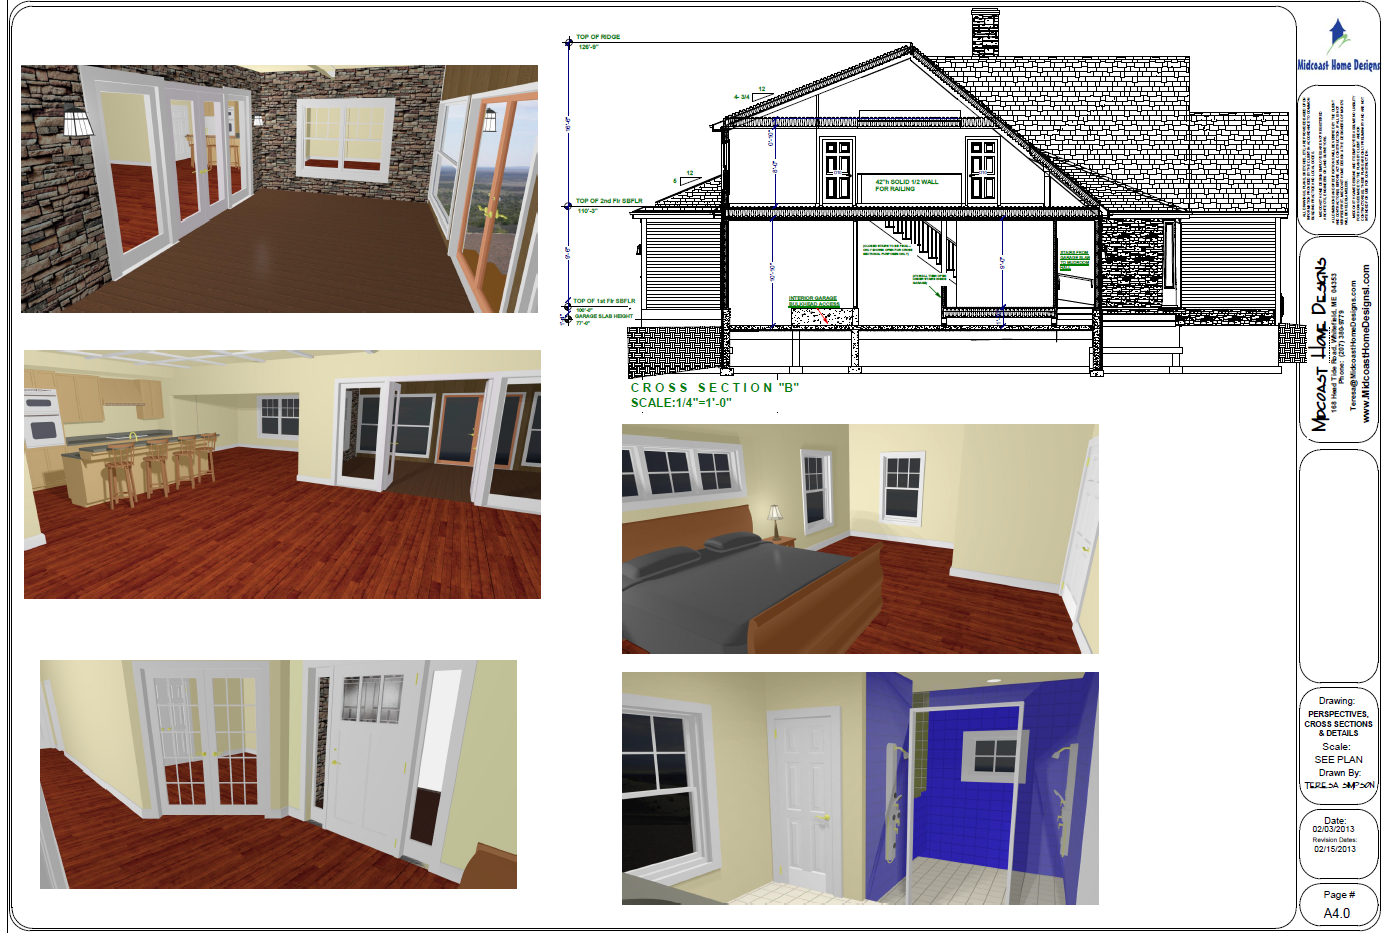 Purinton interior perspective for Midcoast home designs